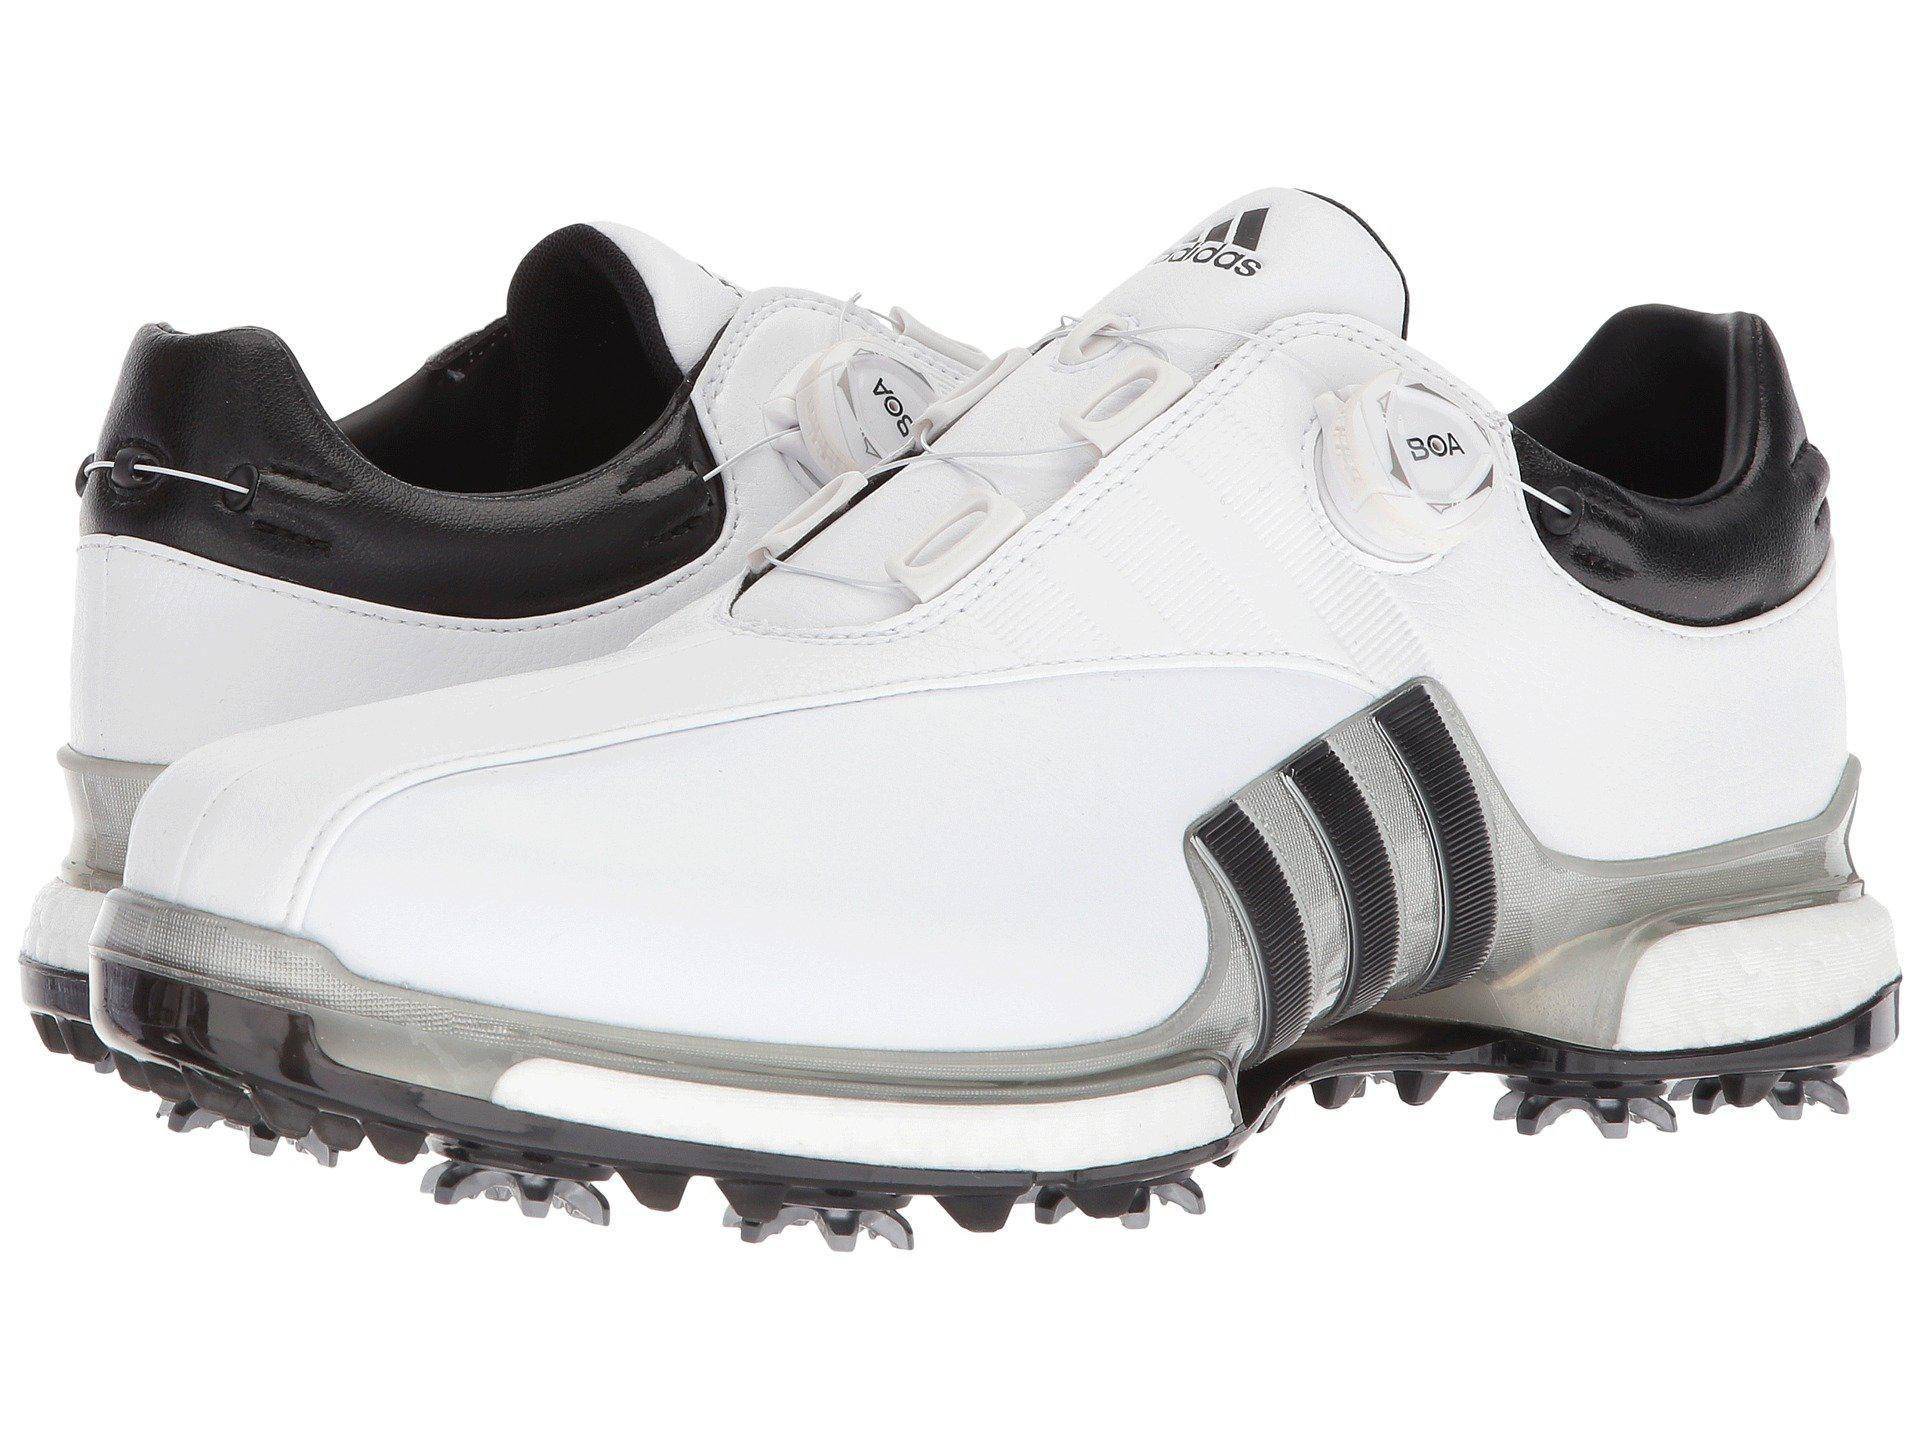 f7916c6a4e7e adidas Originals. Tour360 Eqt Boa (footwear White silver Metallic core Black)  Men s Golf Shoes